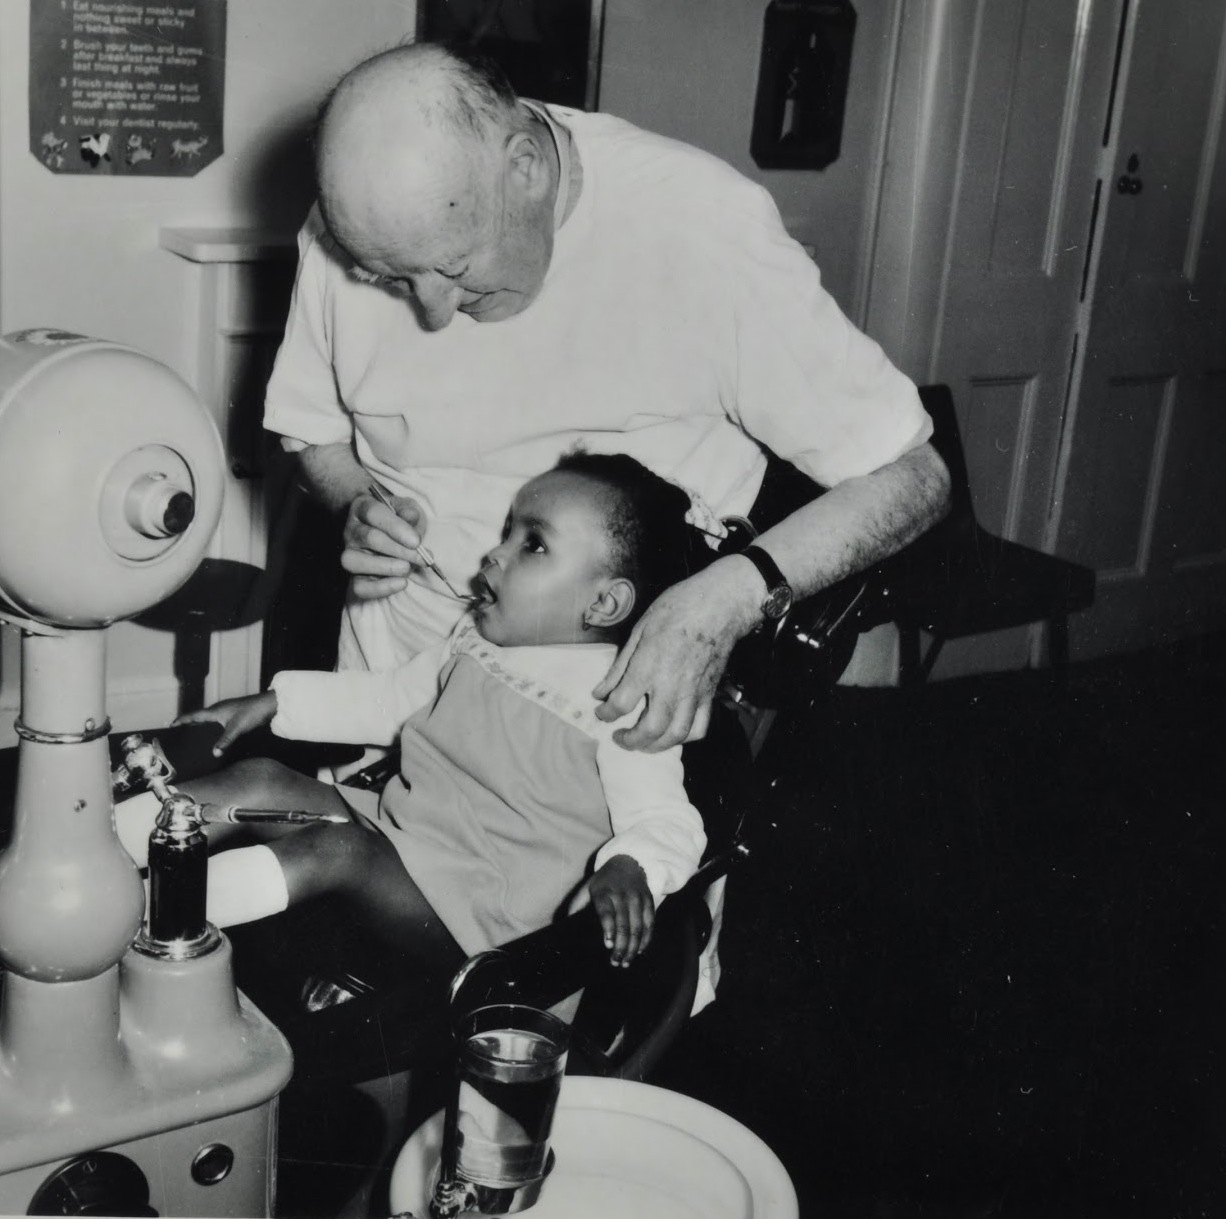 Dentist's chair, c. 1960